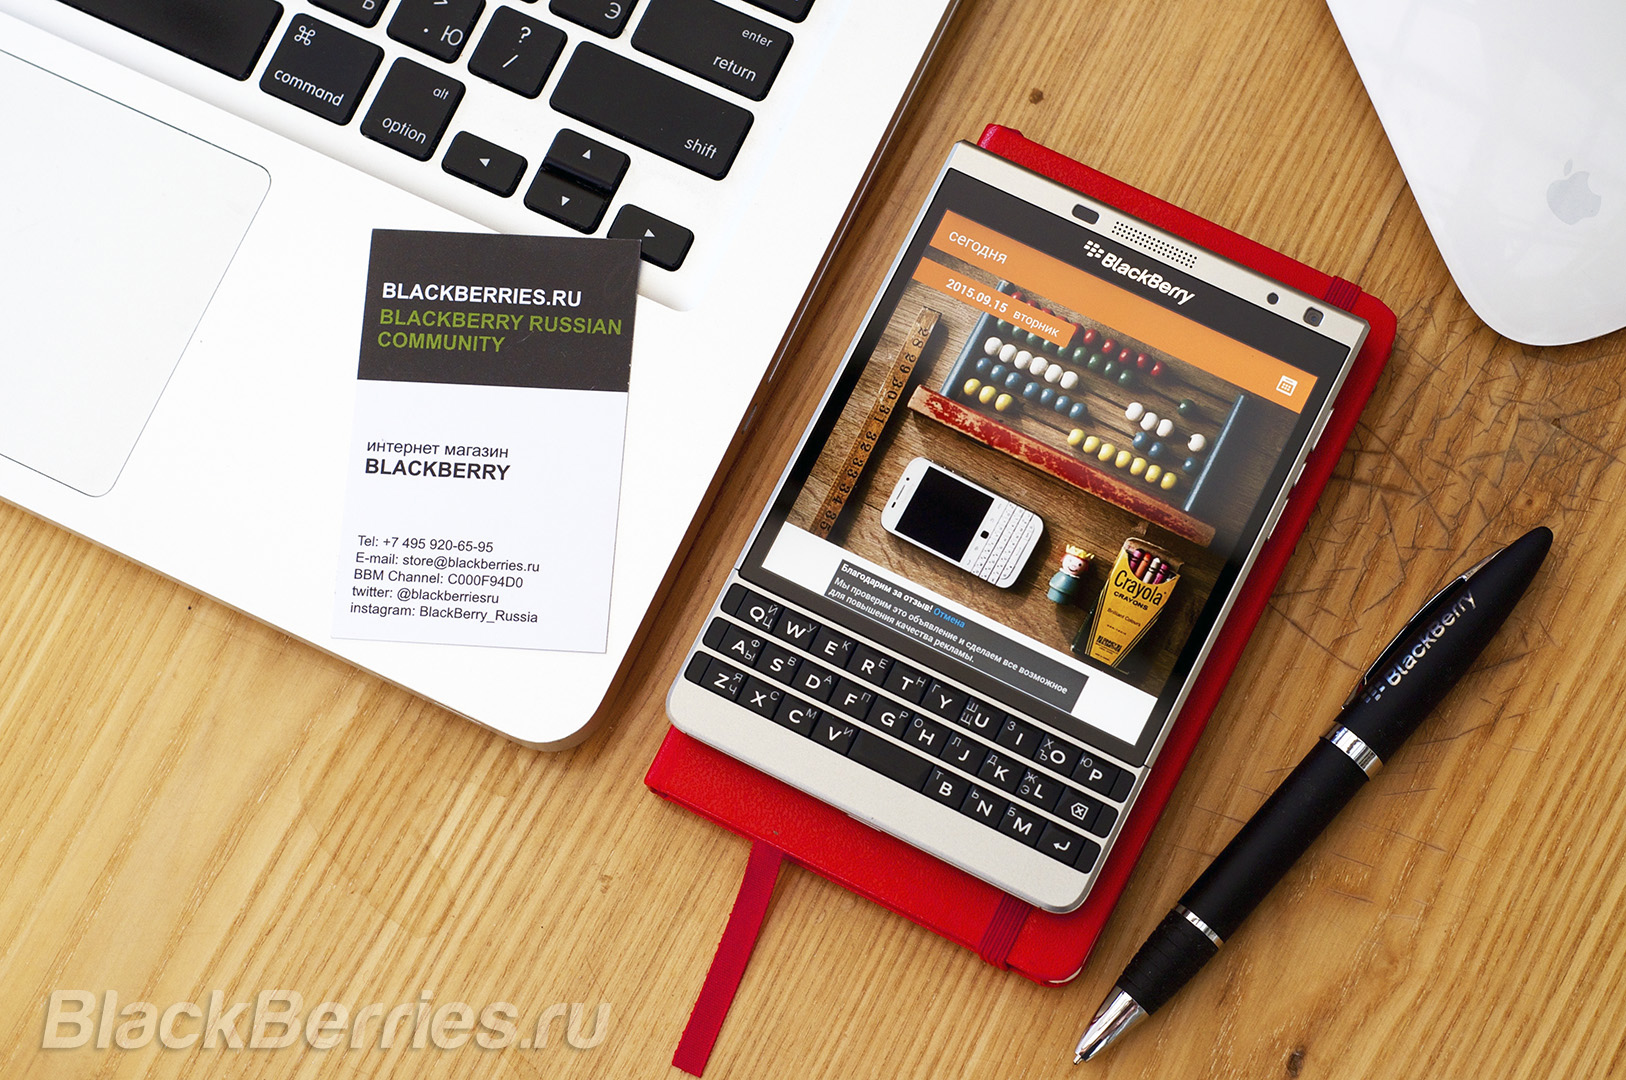 BlackBerry-Passport-SE-Apps-19-09-19